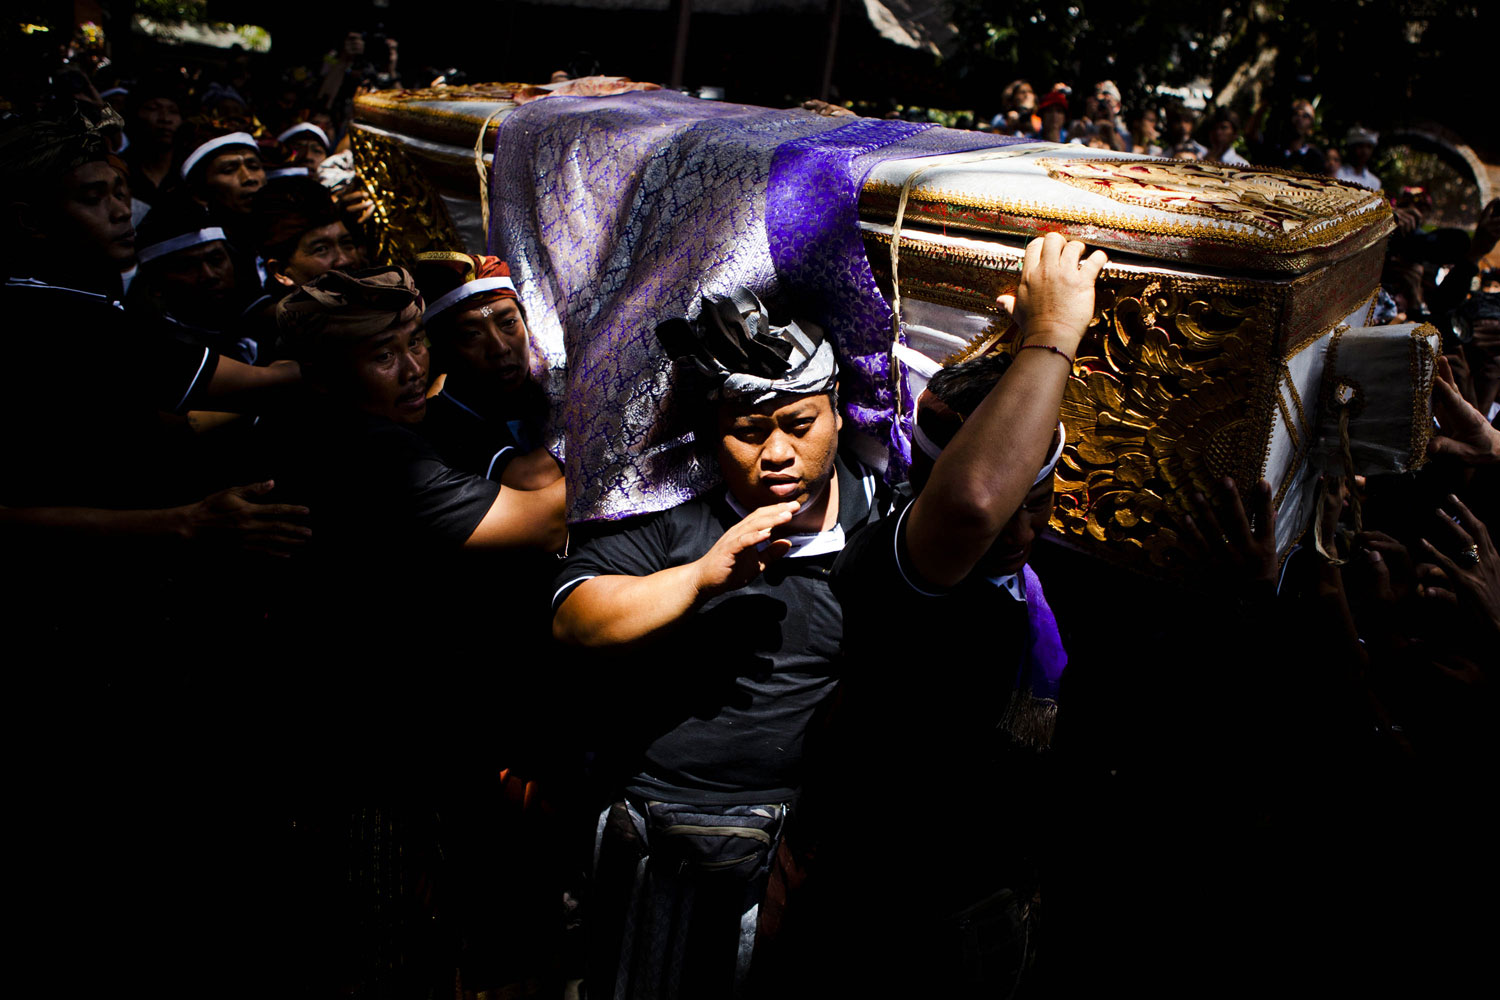 August 18, 2011. Balinese men carry the coffin of Anak Agung Rai Niang during the Hindu Royal cremation—also know as the Pengabenan—for the mother of Gianyar Regent, Tjokorda Oka Artha Ardana Sukawati, at Puri Ubud in Gianyar Bali in Ubud, Bali, Indonesia. Niang Rai died in a Denpasar hospital in May; and will involve a nine level, 24m high 'bade' or body carring tower, made by upto 100 volunteers from 14 local villages. It will be carried to the cremation by 4500 Ubud residents.